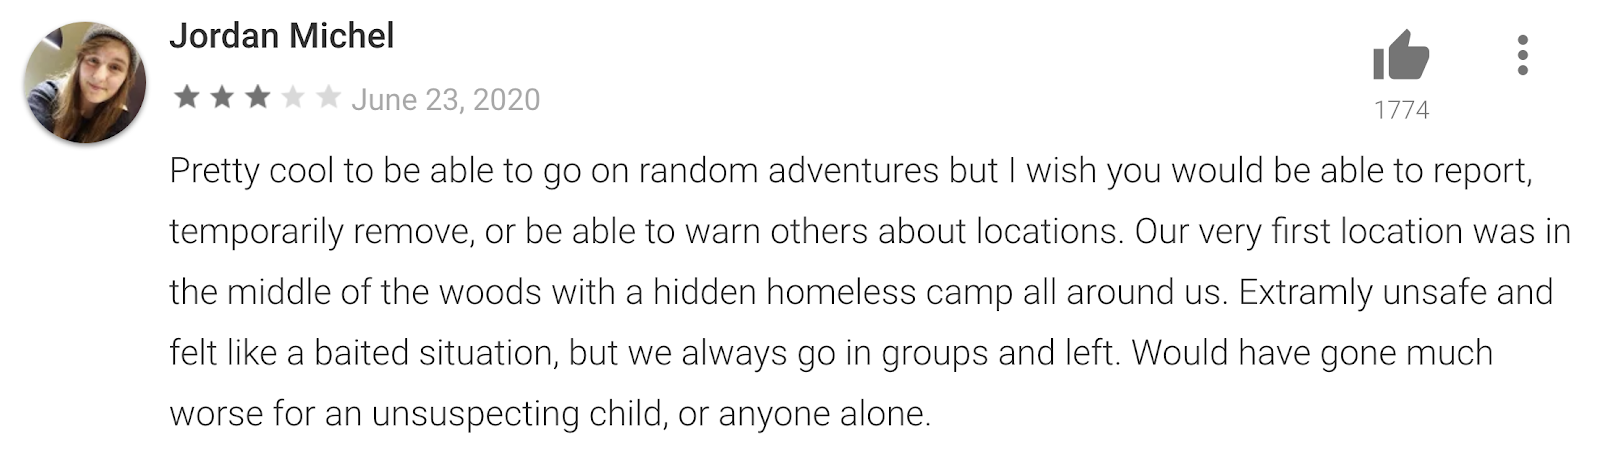 App review by Jordan Michel: Pretty cool to be able to go on random adventures but I wish you could be able to report, temporarily remove, or be able to warn others about locations. Our very first location was in the middle of the woods with a hidden homeless camp all around us. Extremely unsafe and felt like a baited situation, but we always go in groups and left. Would have gone much worse for an unsuspecting child, or anyone alone.